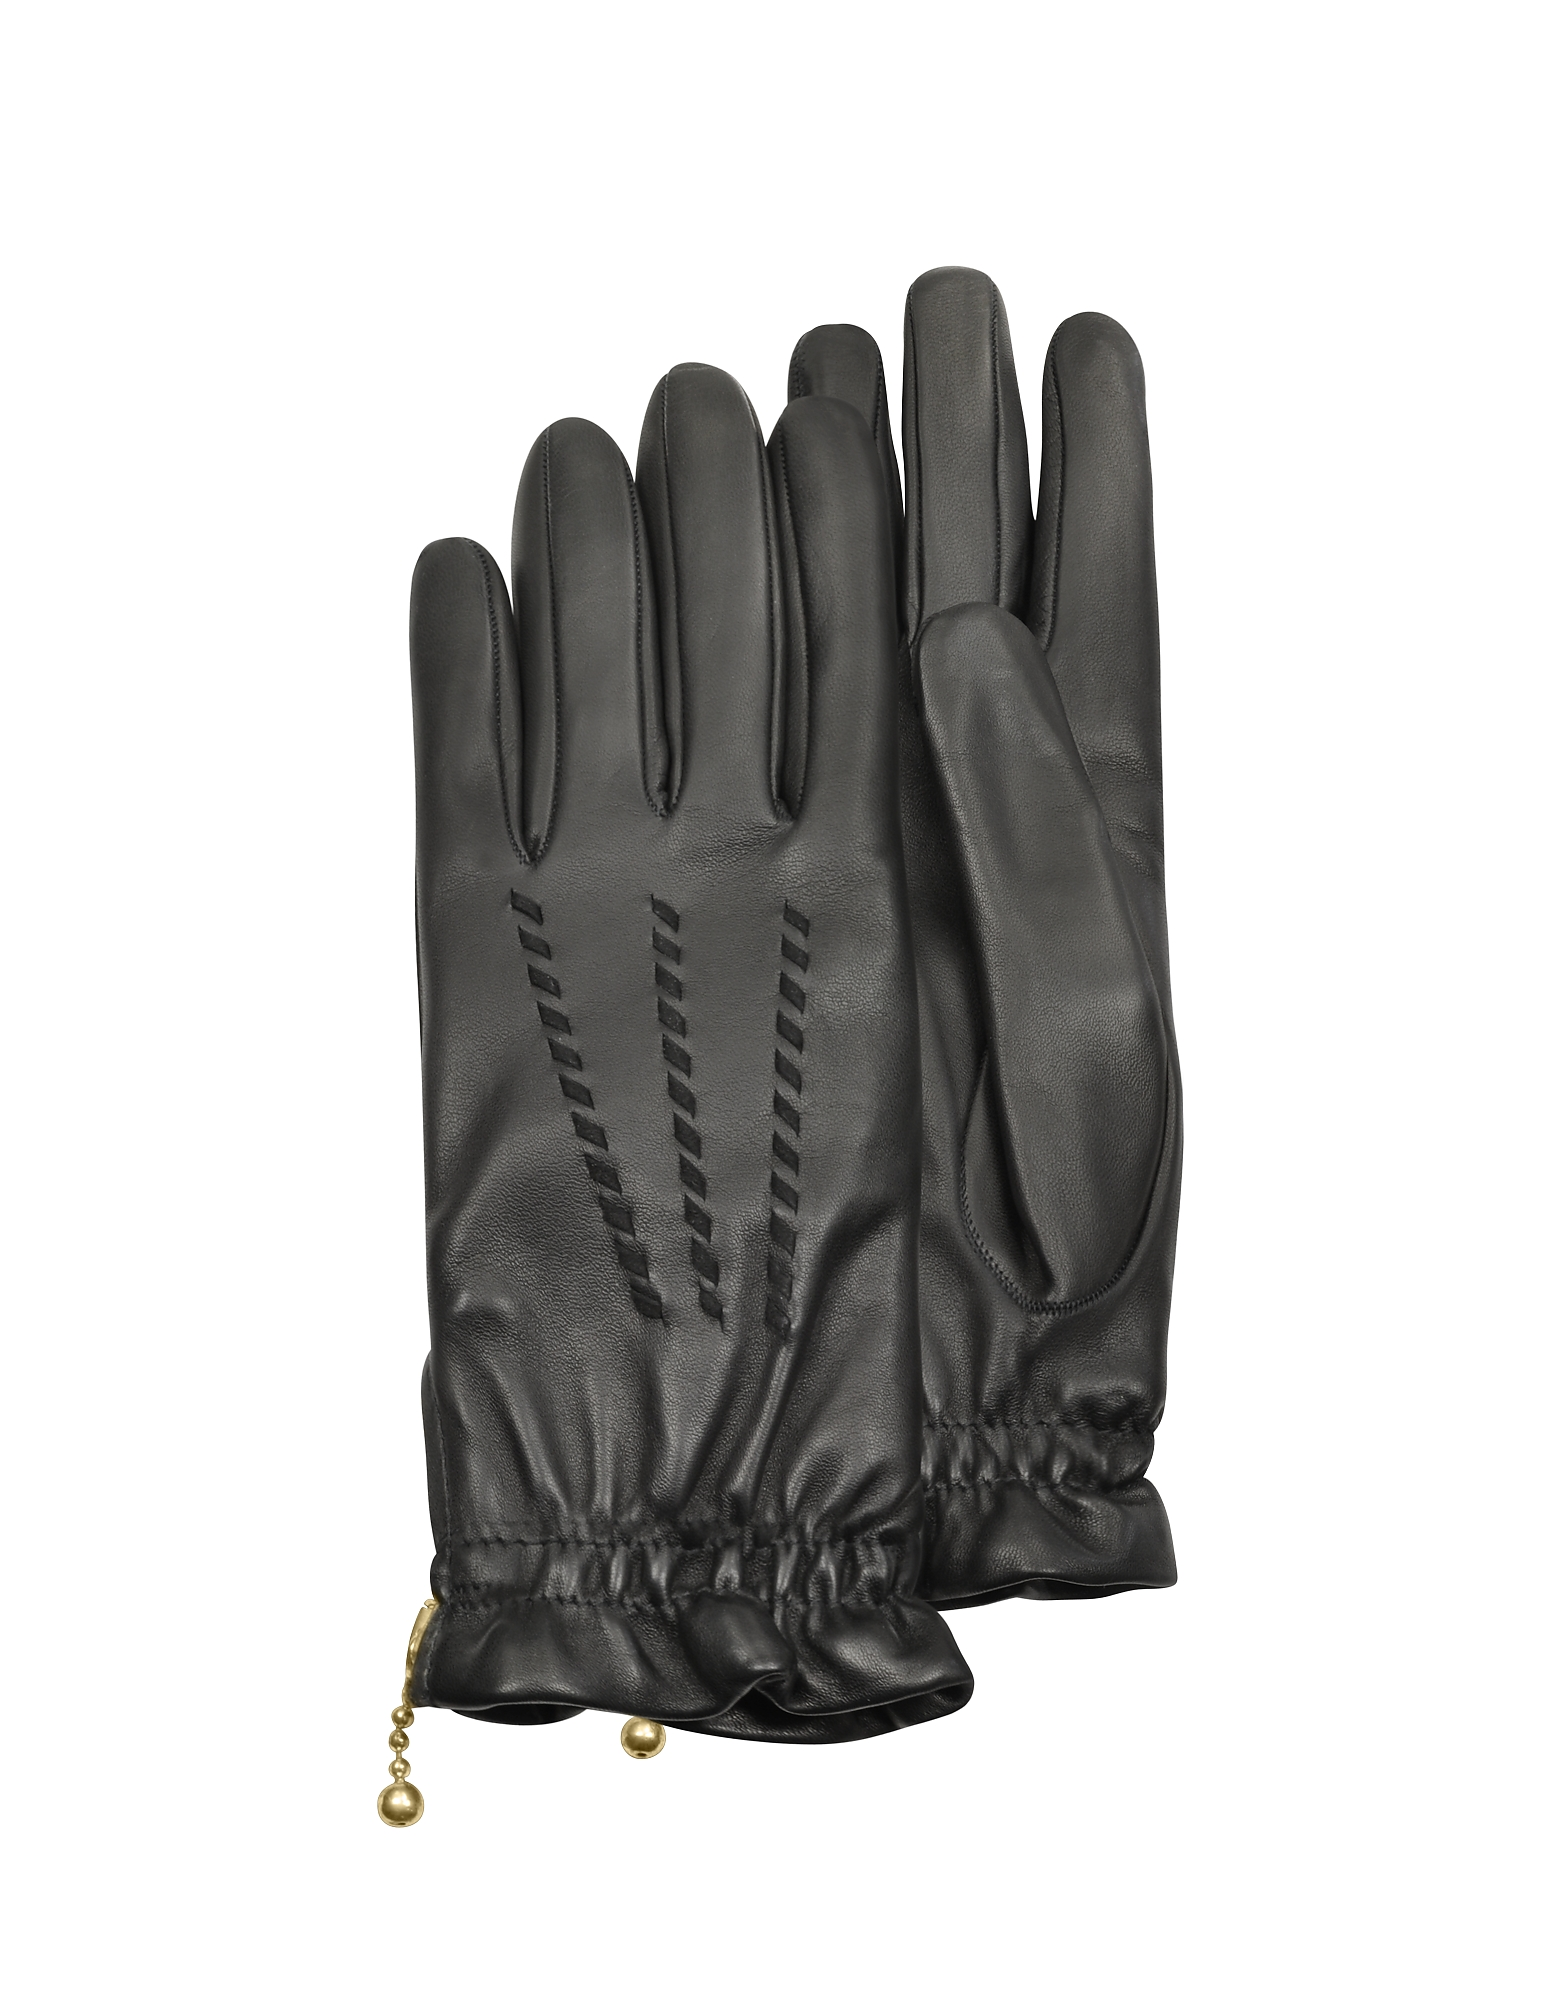 Forzieri Women's Gloves, Women's Embroidered Black Calf Leather Gloves